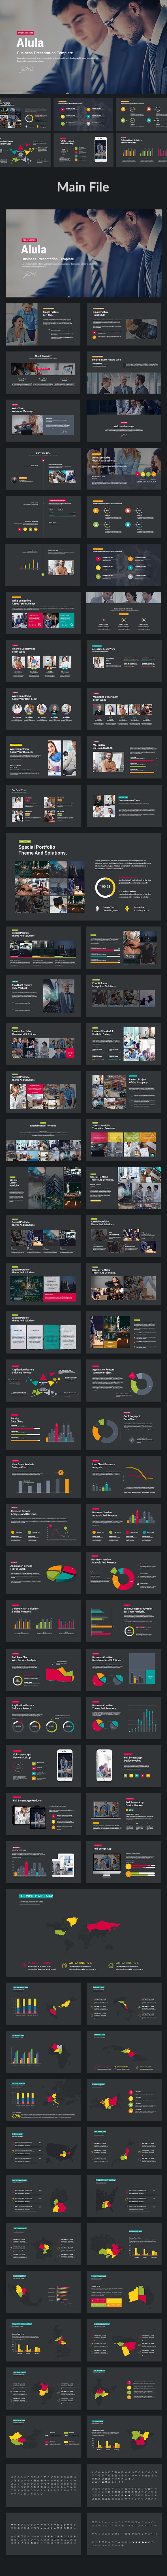 Alula - Business Keynote Template - Business Keynote Templates